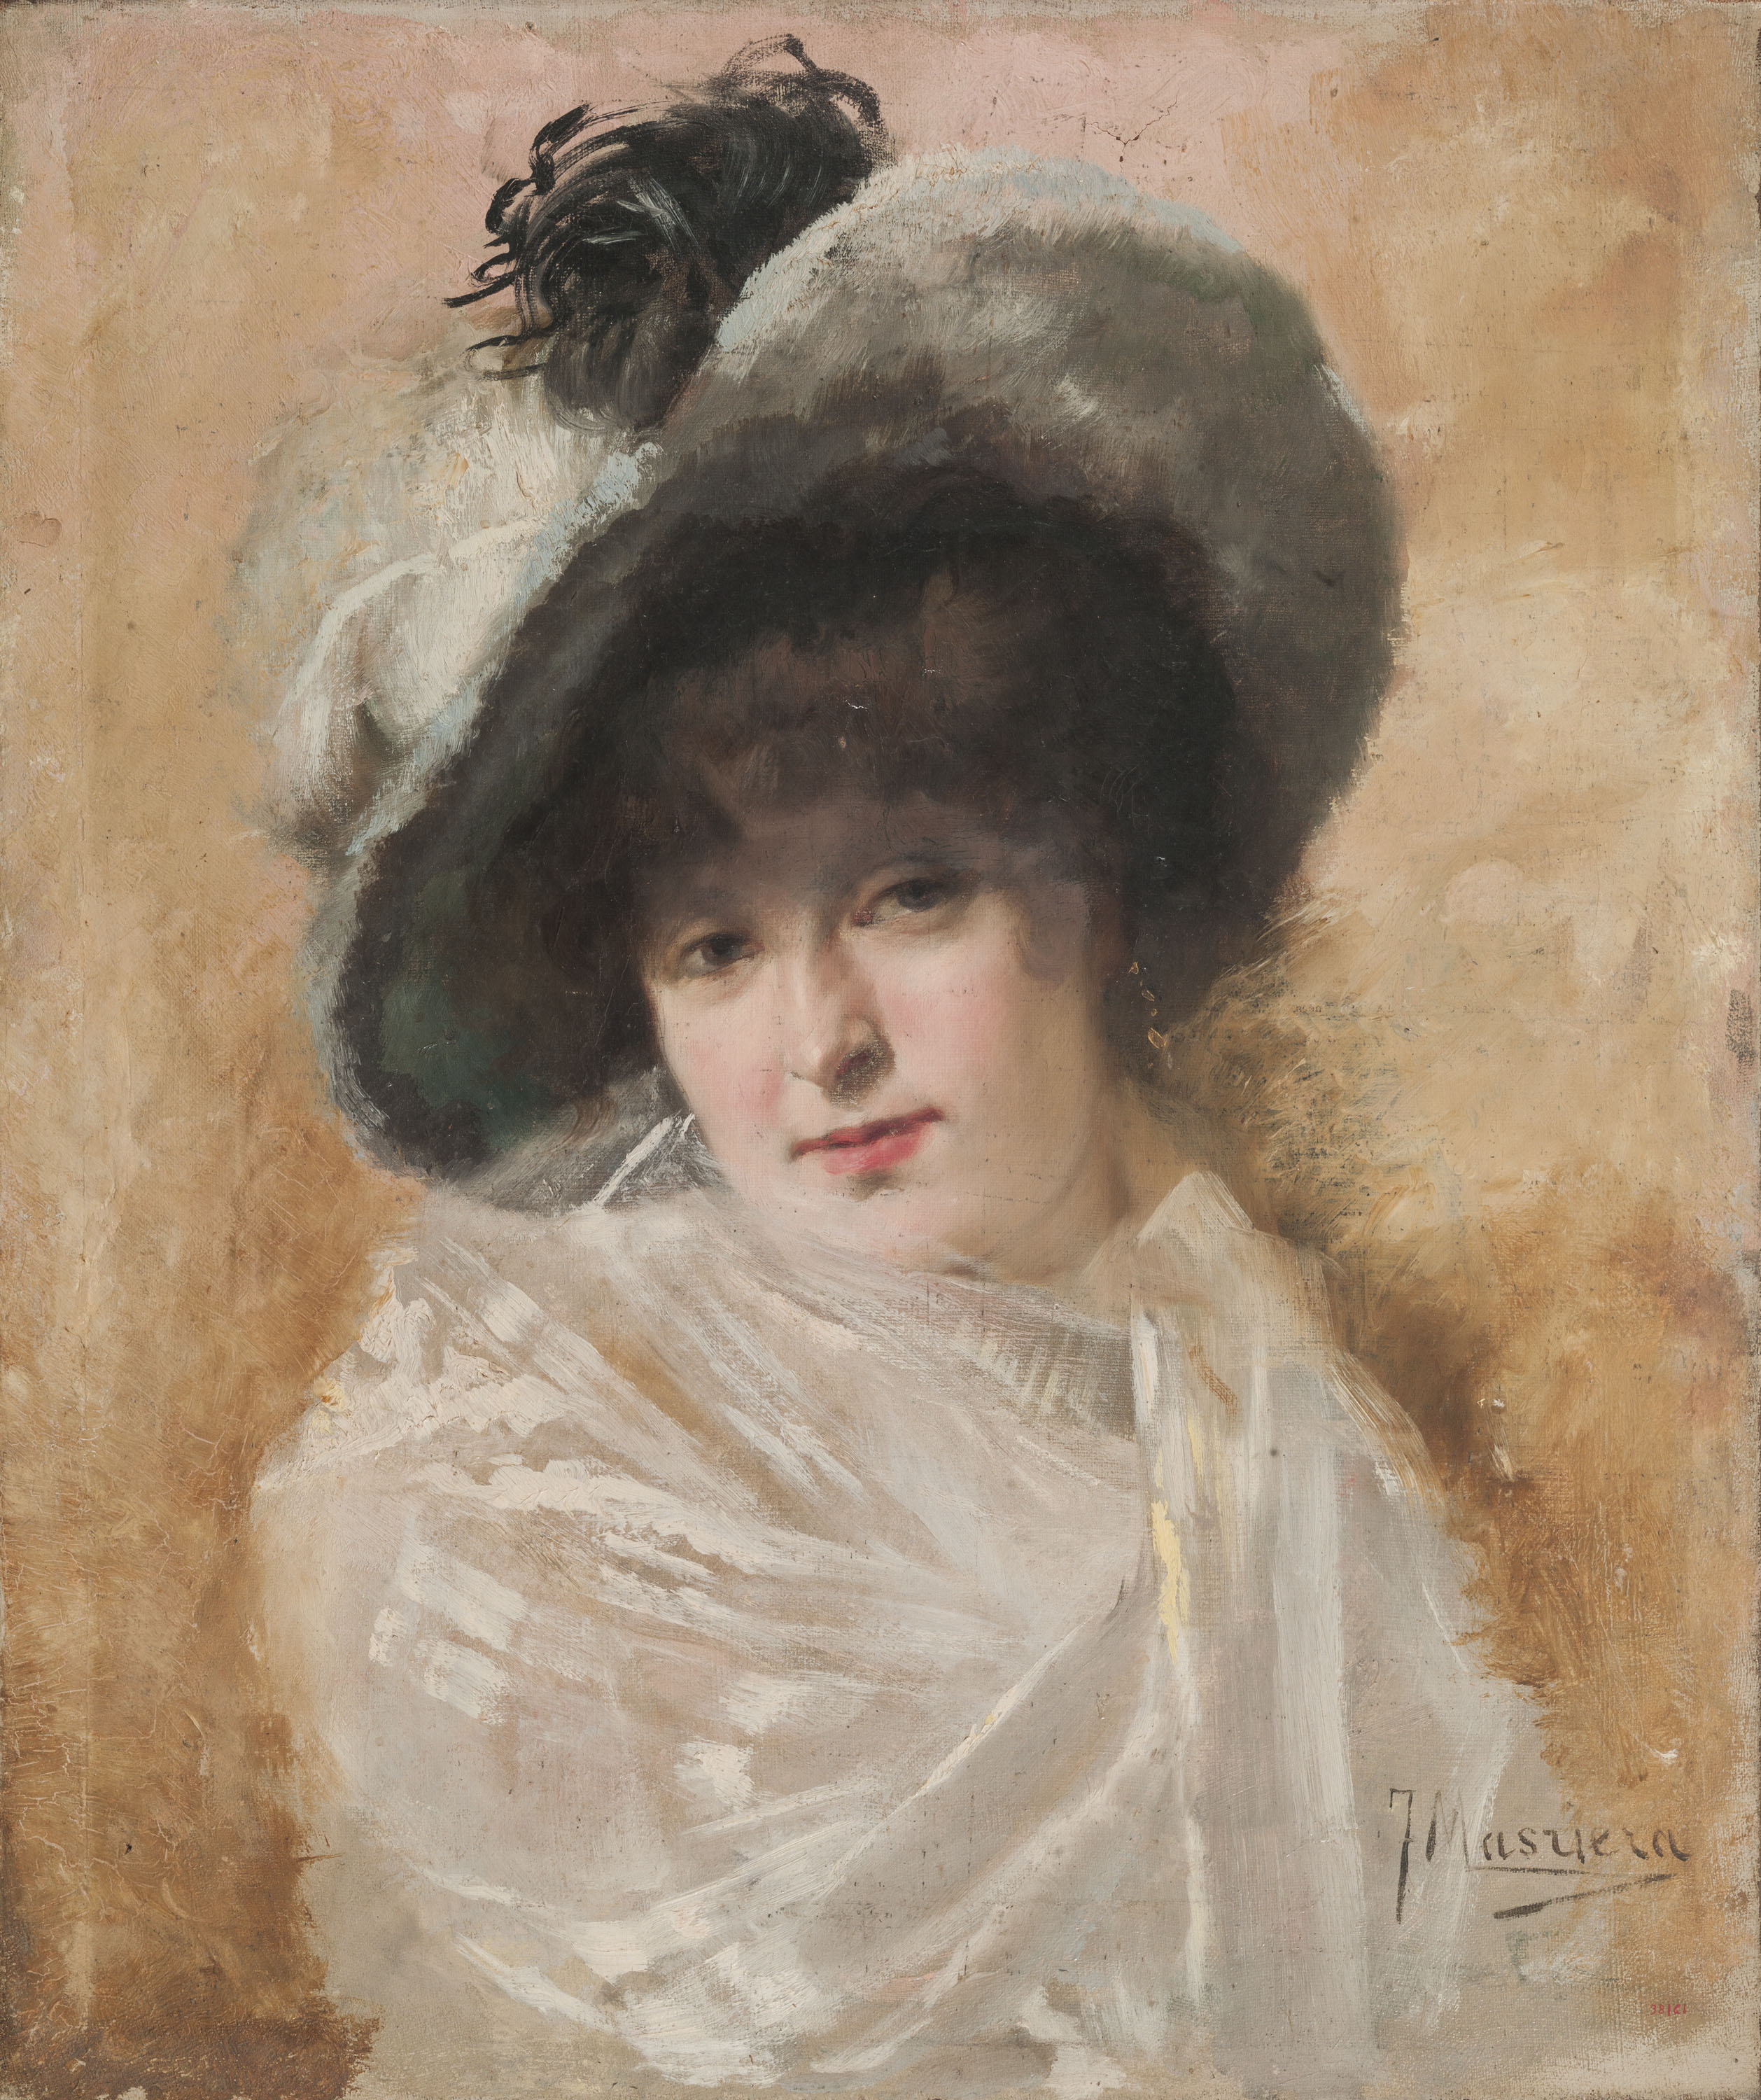 Francesc Masriera - Bust of a Woman with a Shawl and a Hat  - Circa 1875-1900